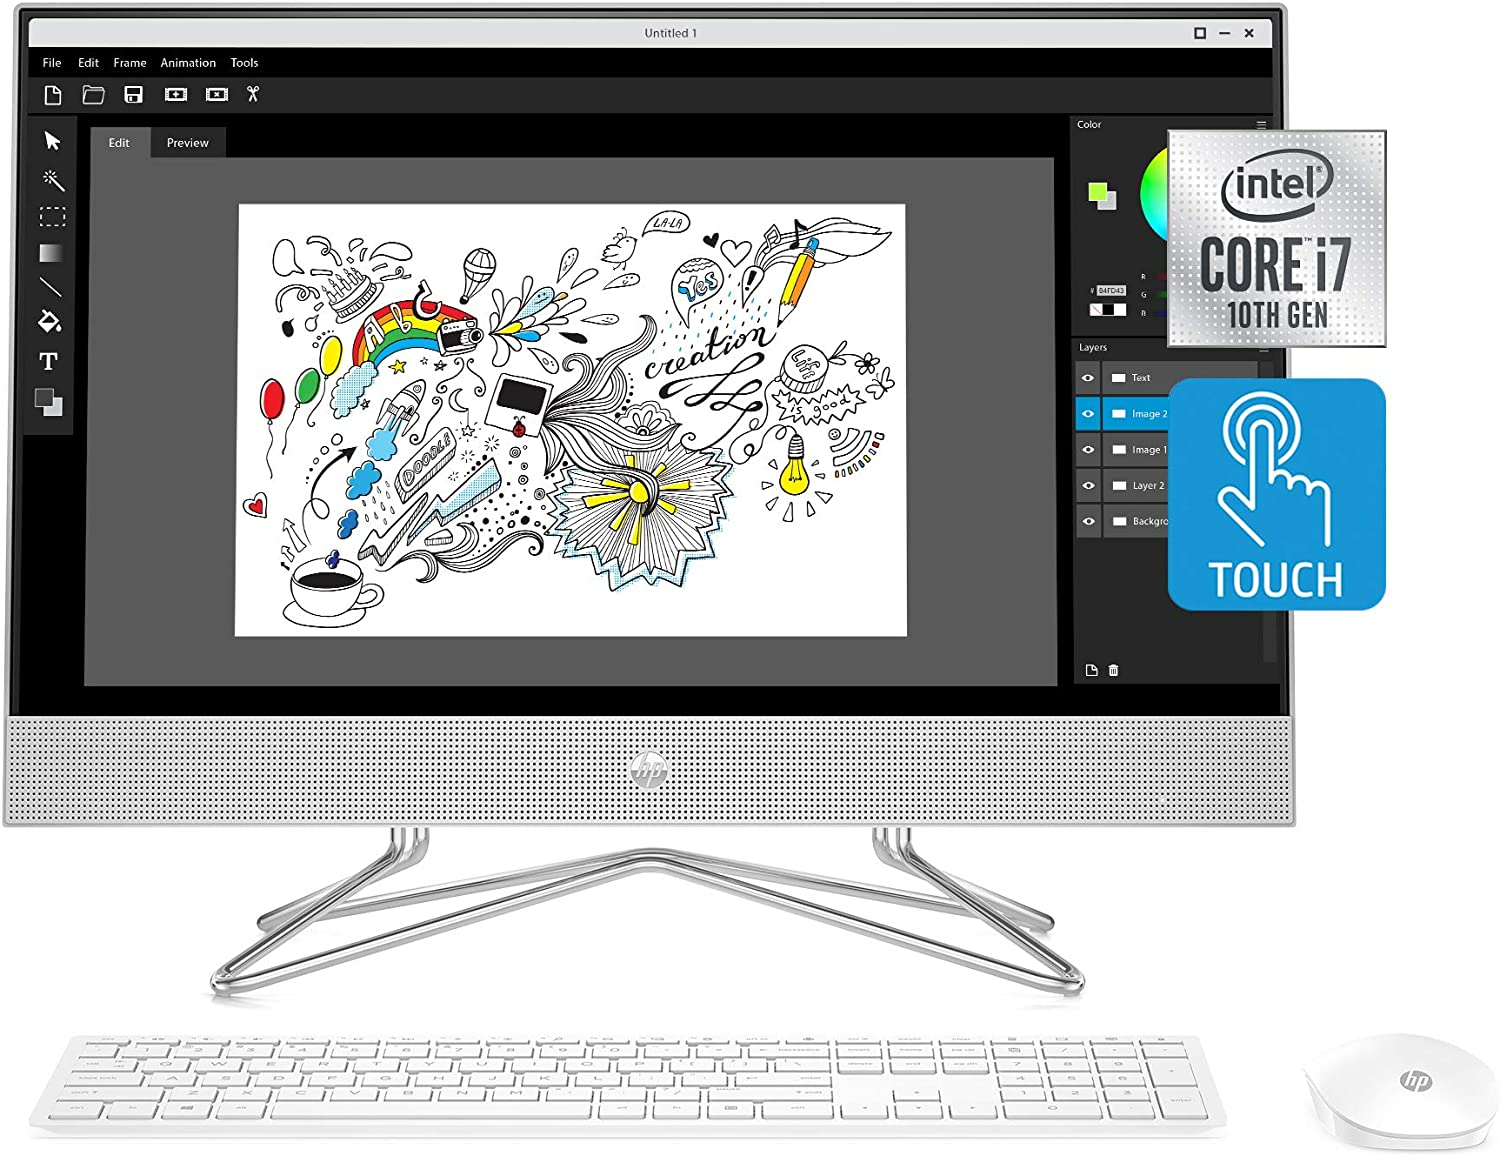 HP 24-inch All-in-One Touchscreen Desktop Computer, Intel Core i7-1065G7 Processor, 16 GB RAM, 512 GB SSD, Windows 10 Home (24-dp0180, Silver)